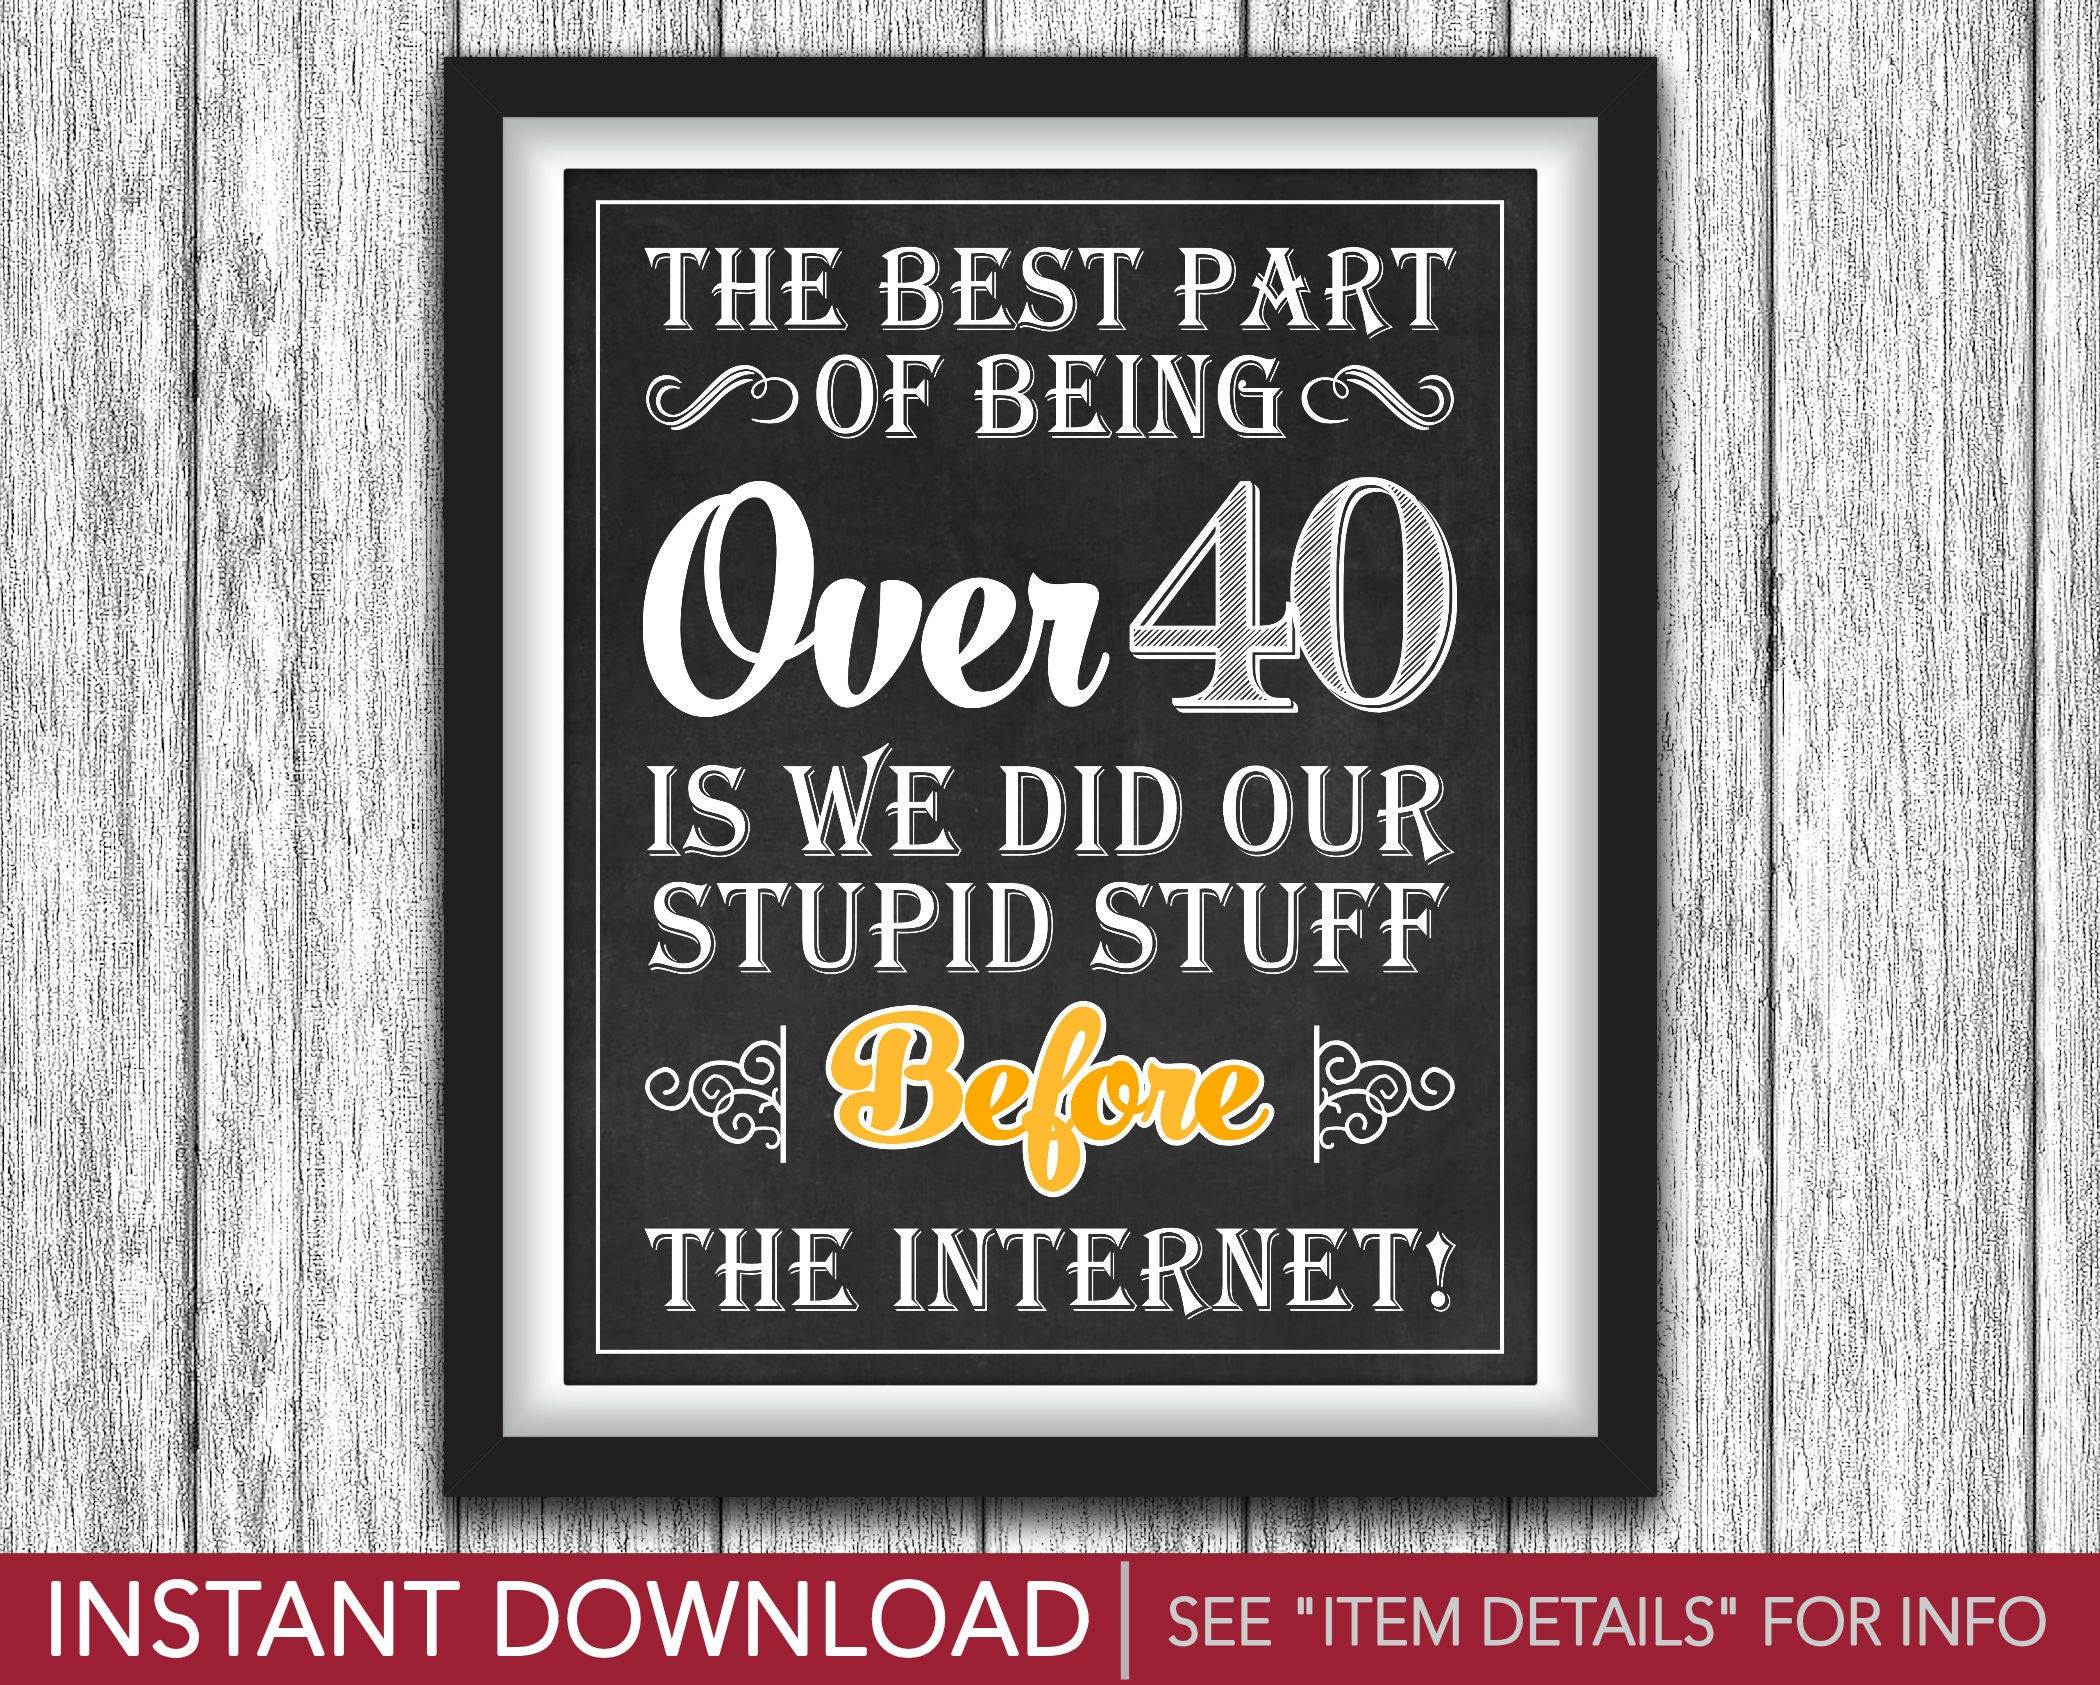 photograph relating to 40th Birthday Signs Printable identify 40th Birthday Signal The Most straightforward Section of Getting In excess of 40 Cheers and Beers towards 40 Several years Concept Printable 8\